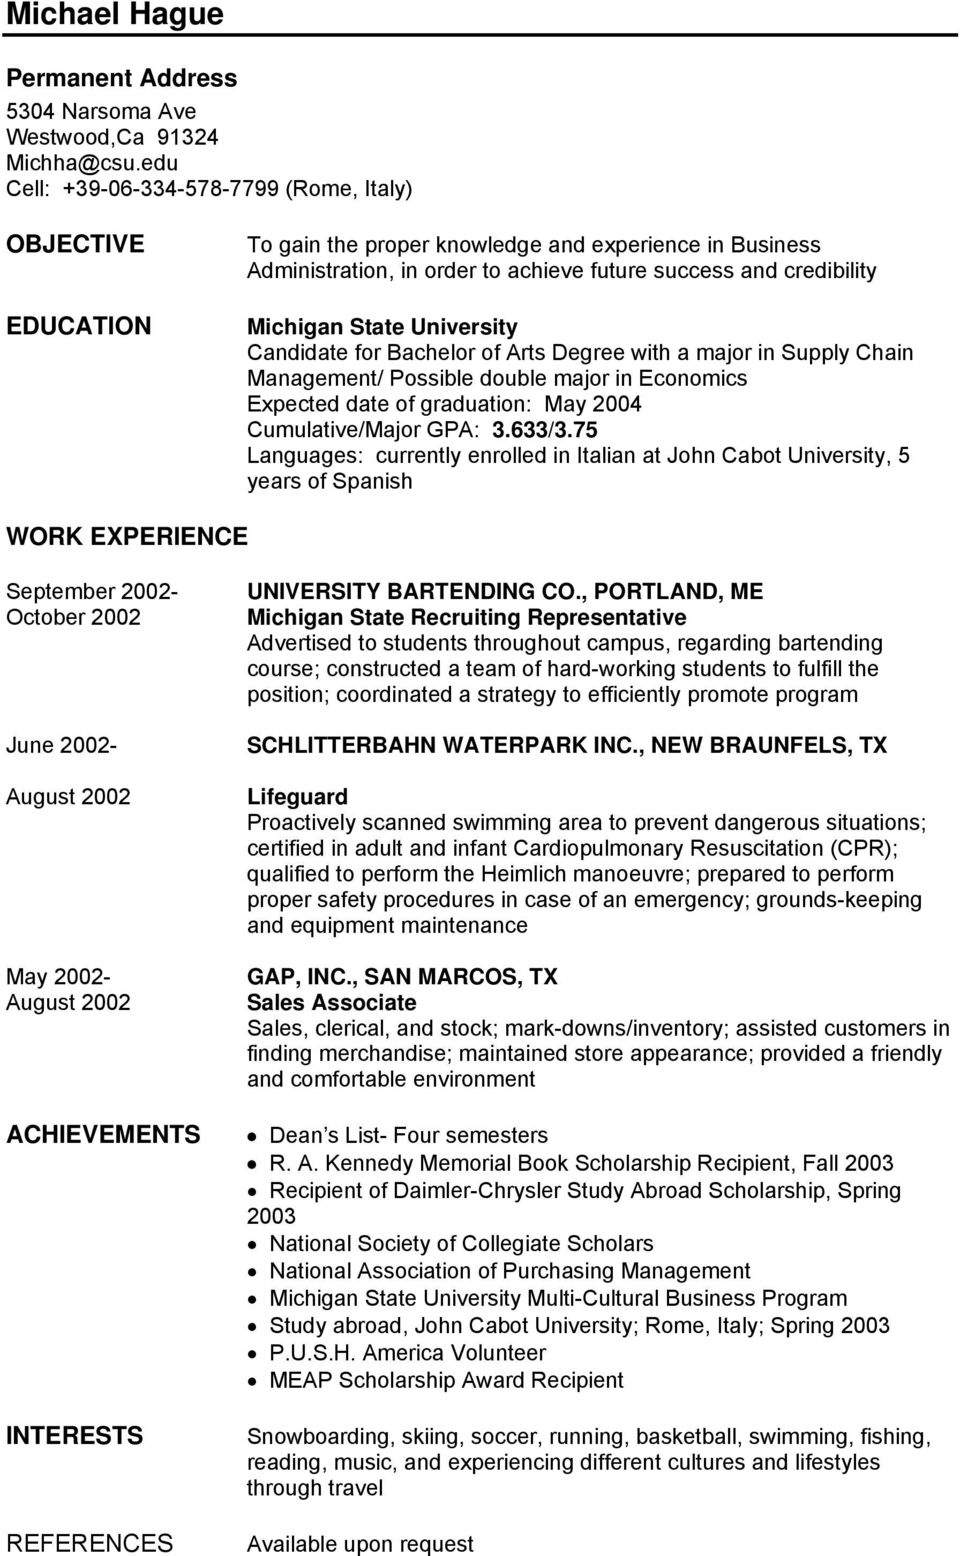 State University Candidate for Bachelor of Arts Degree with a major in Supply Chain Management/ Possible double major in Economics Expected date of graduation: May 2004 Cumulative/Major GPA: 3.633/3.